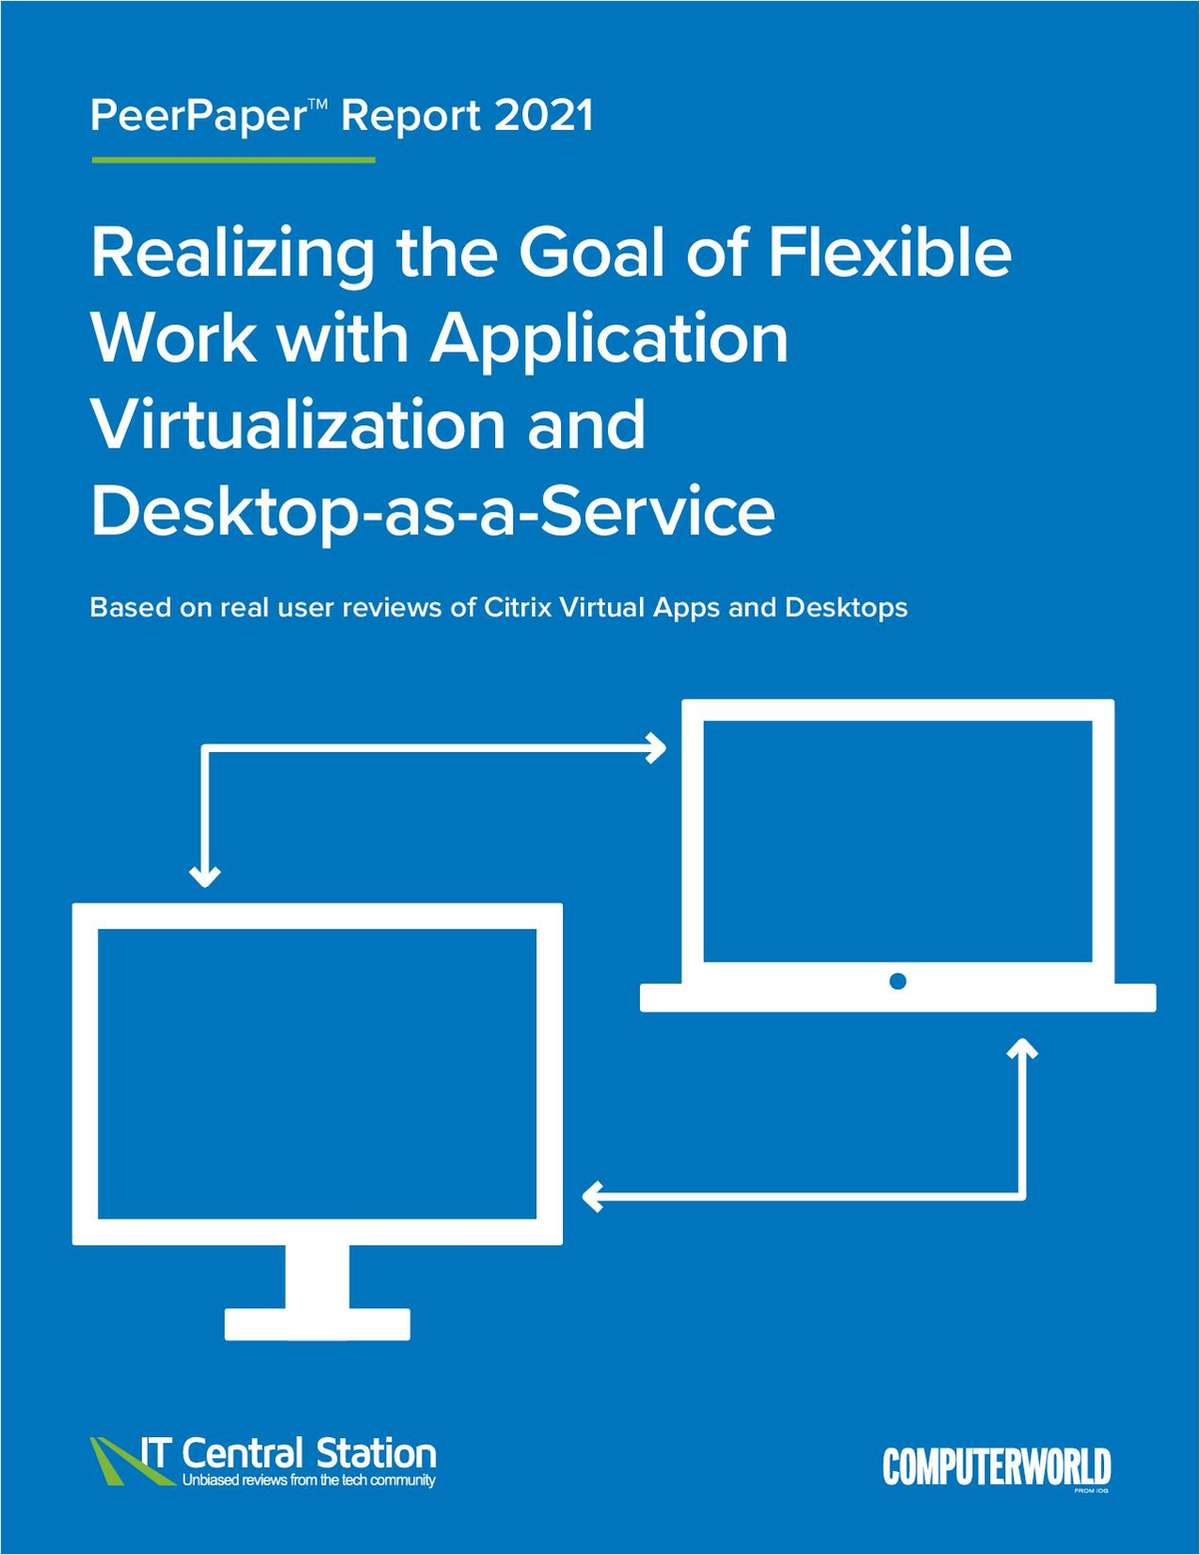 Realizing the Goal of Flexible Work with Application Virtualization and Desktop-as-a-Service